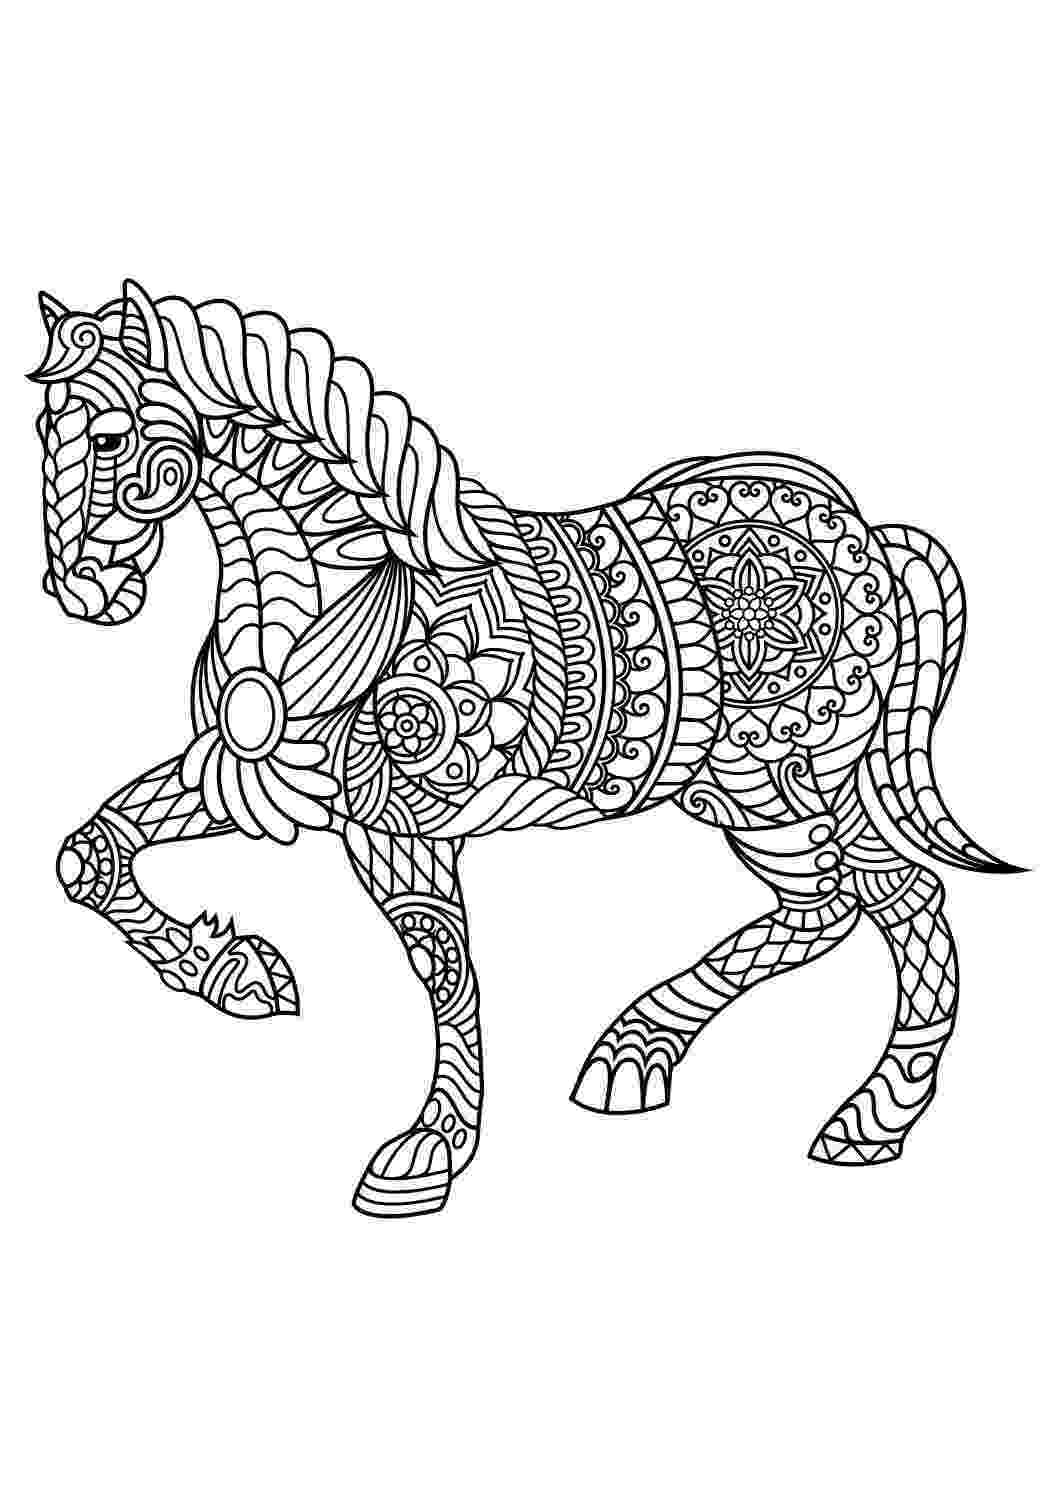 coloring pages of animals horses animal coloring pages pdf horse coloring pages mandala coloring horses of animals pages